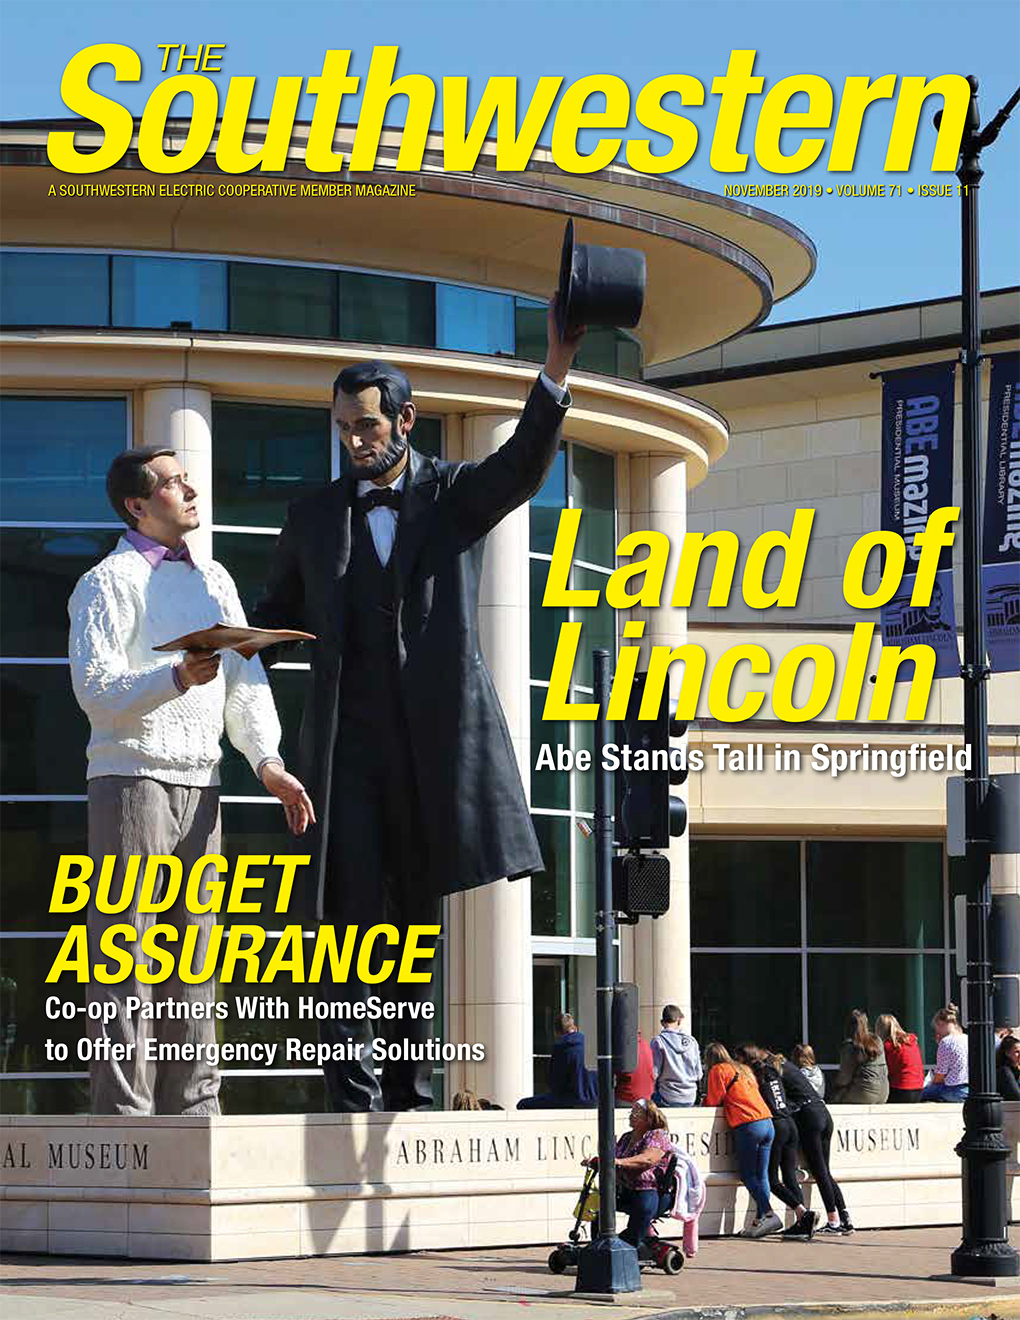 The Southwestern Cover Page